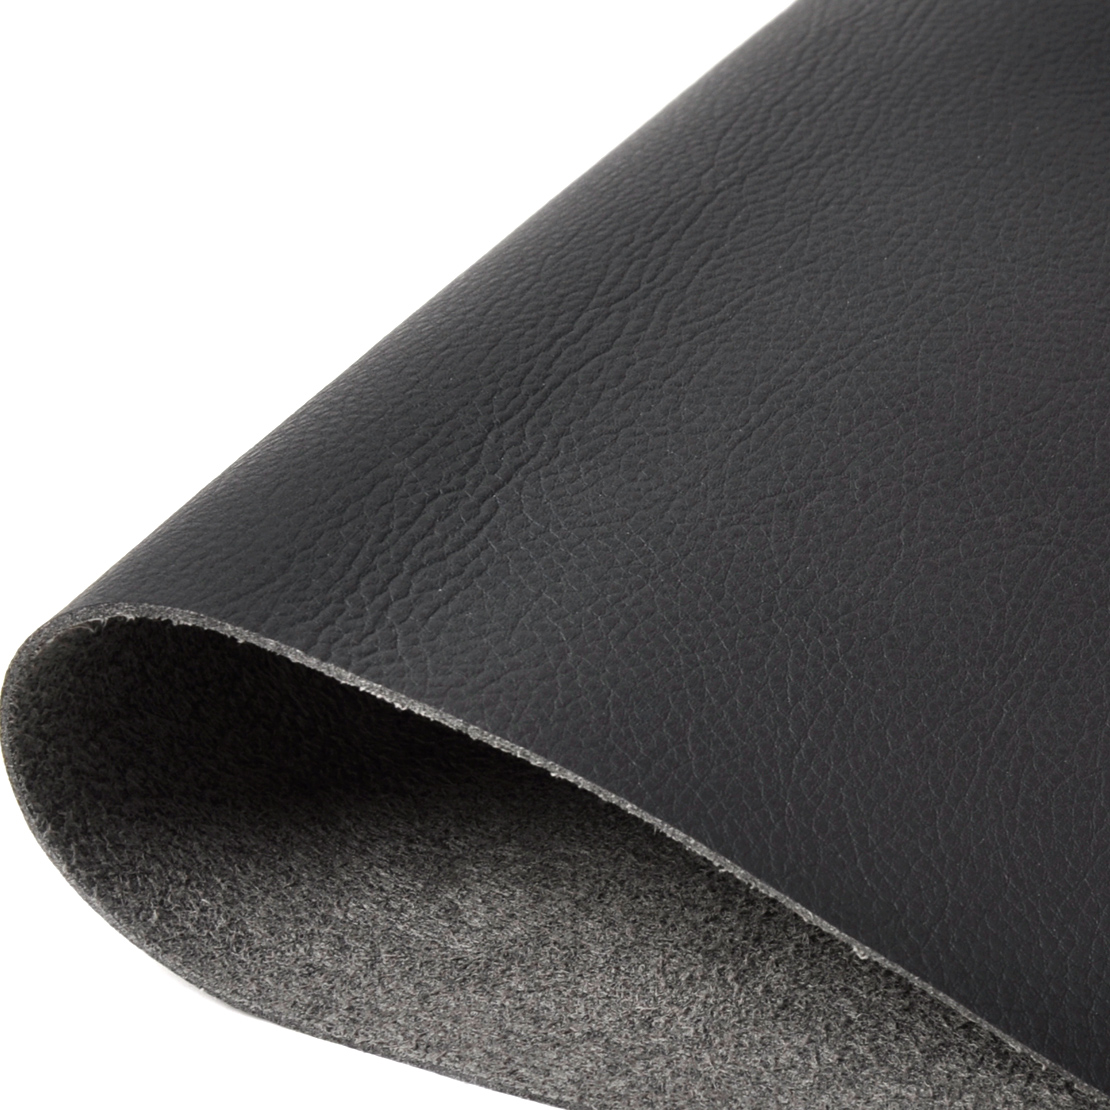 DWCX 1pair Black Front Door Panels Armrest Skin Covers Leather for Honda Accord 2008 2009 2010 2011 2012 DIY only fit for Sedan